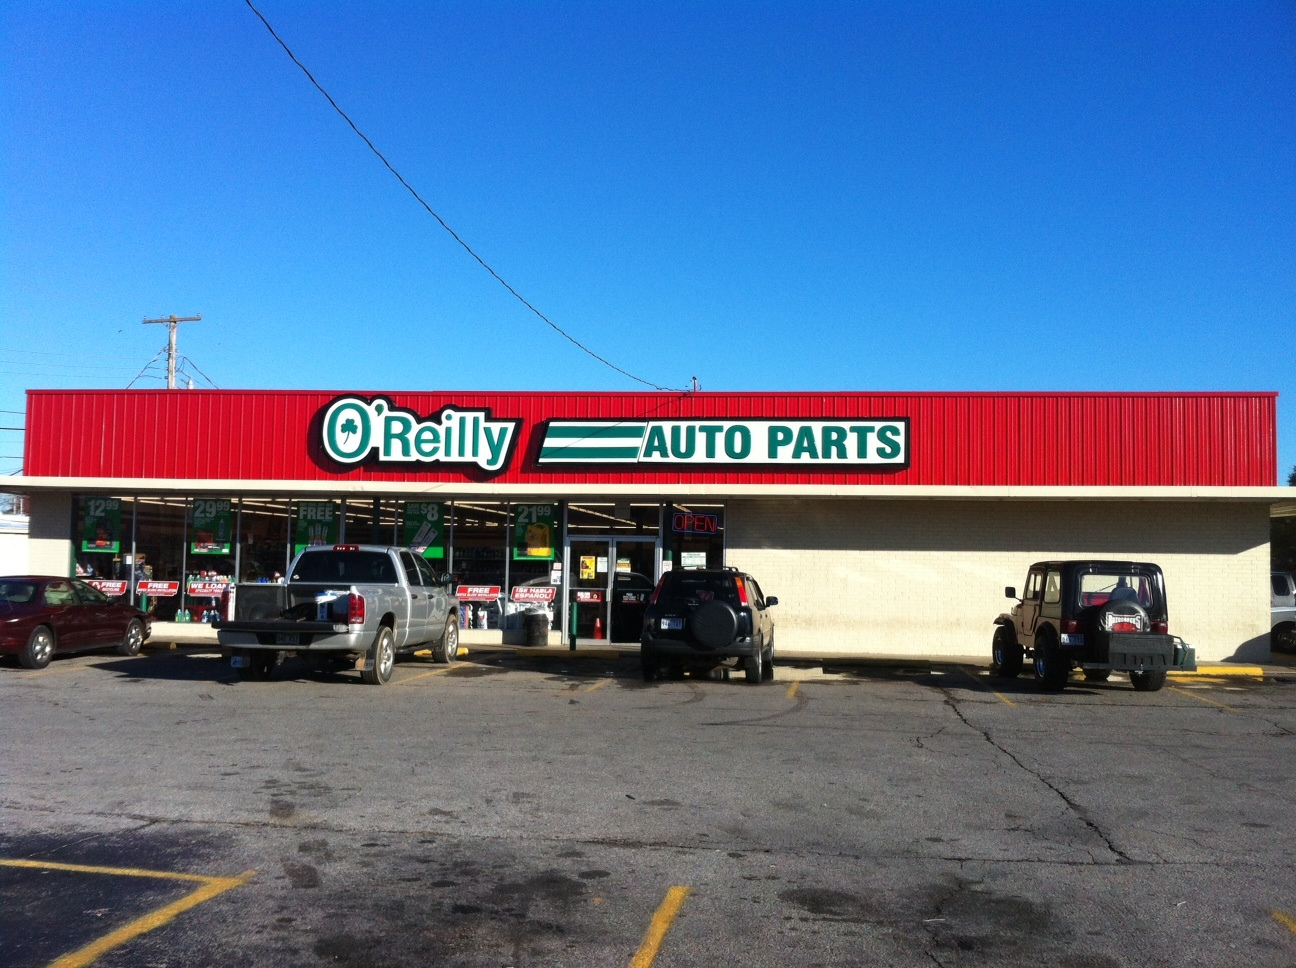 O'Reilly Auto Parts is the premier source for high quality car parts and car service. As the dominant supplier of auto parts in the market, they offer their retail customers, professional installers and jobbers the best combination of price and quality provided with the highest possible service level.